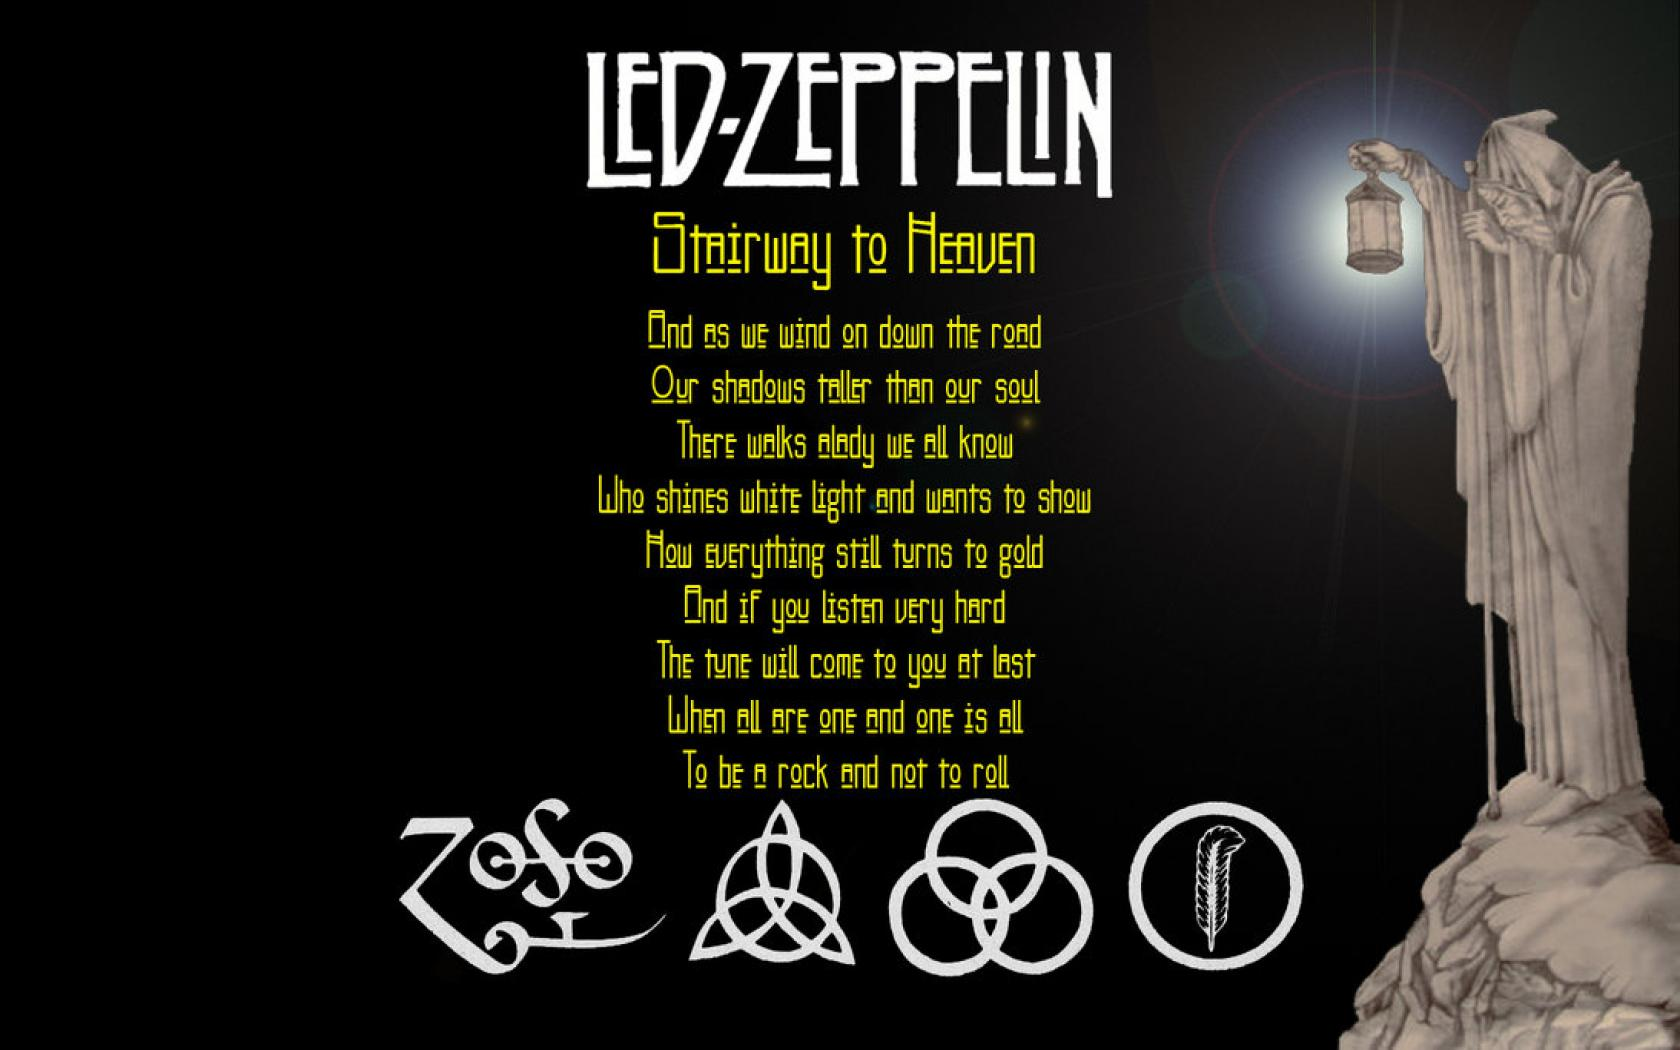 Led Zeppelin Wallpapers Hd Posted By Ethan Simpson